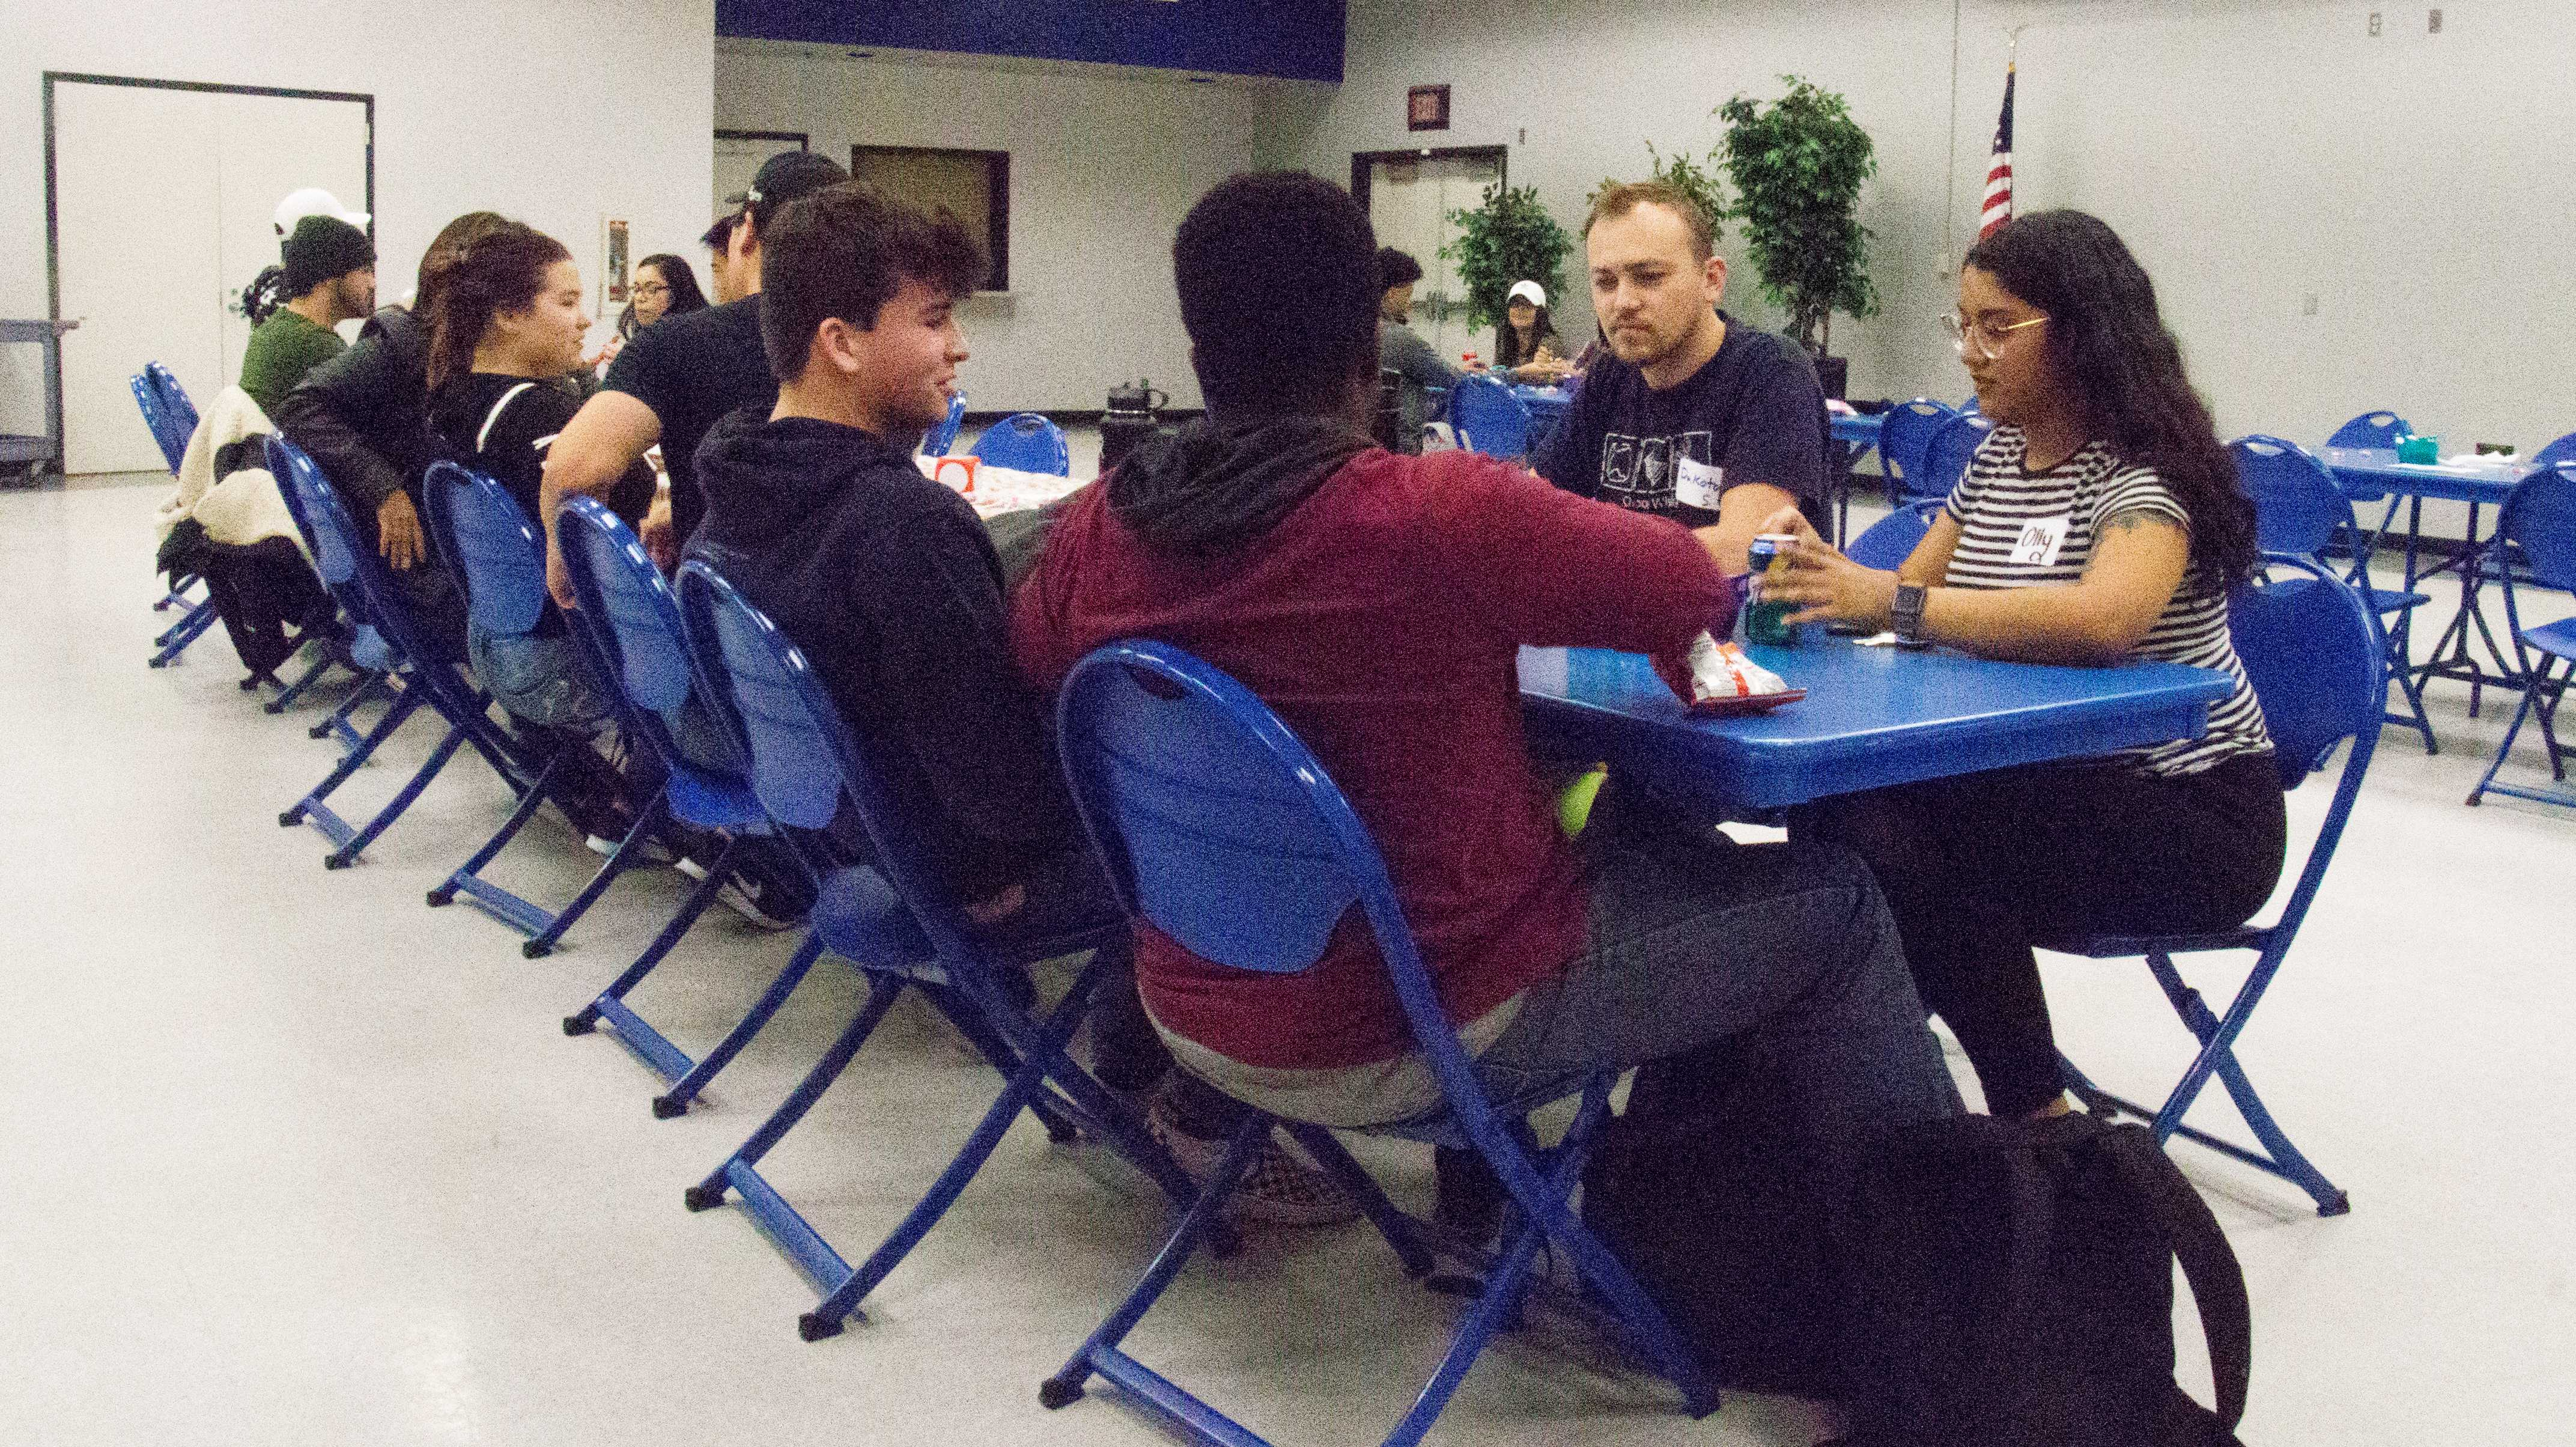 New speed friending event comes to CSU Bakersfield